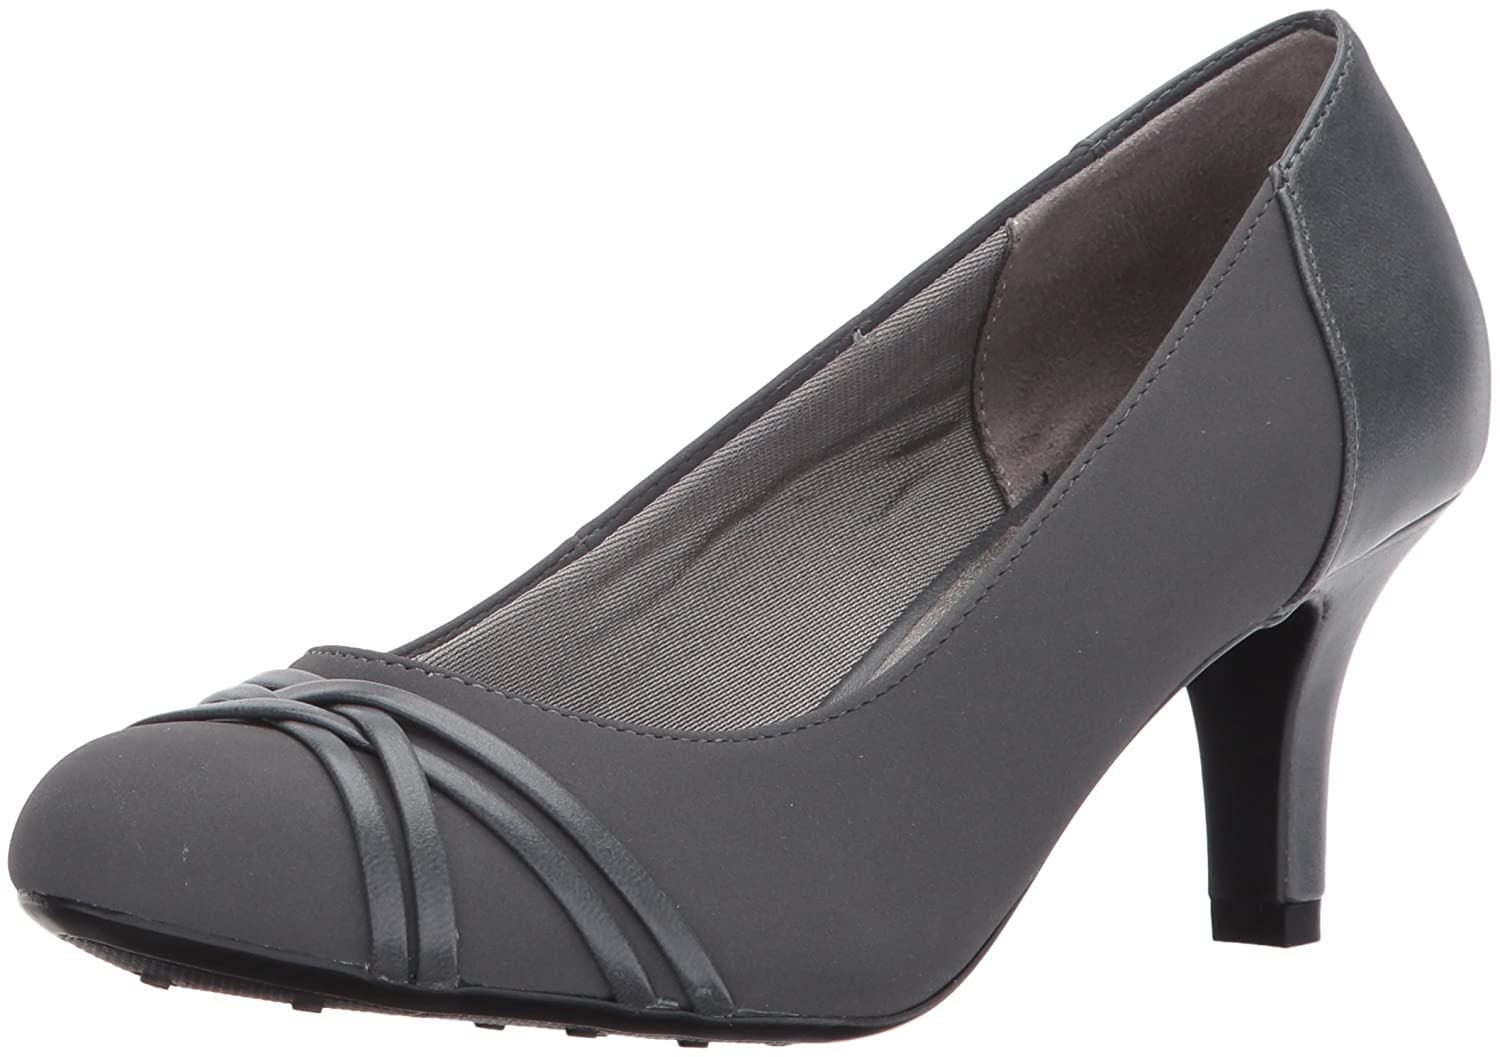 LifeStride Women's Pascal Dress Pump B073258HT8 7.5 B(M) US|Tornado